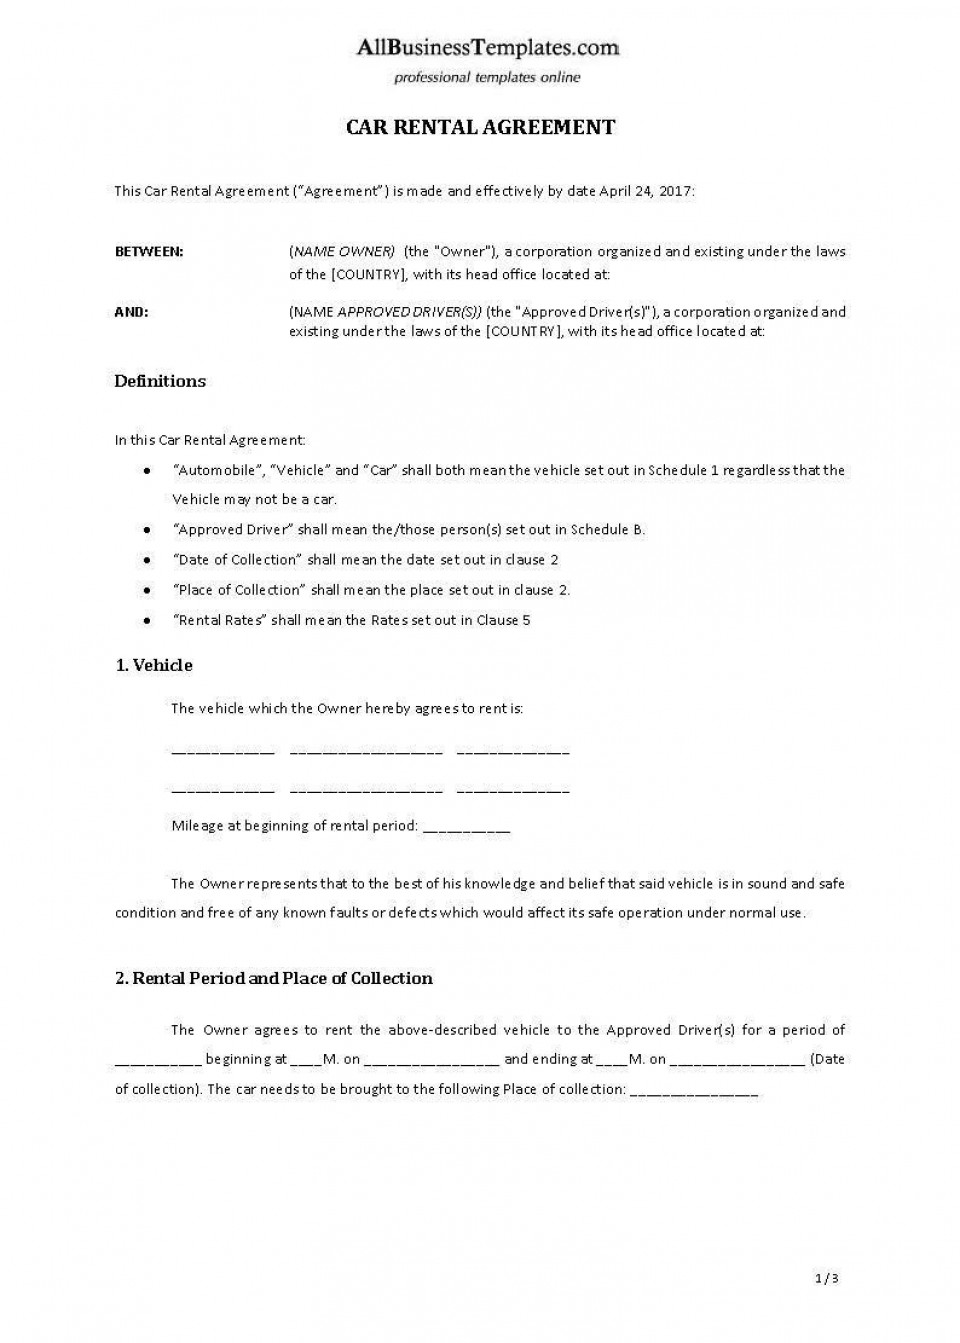 001 Archaicawful Template Vehicle Rental Agreement Highest Clarity  Motor Word960